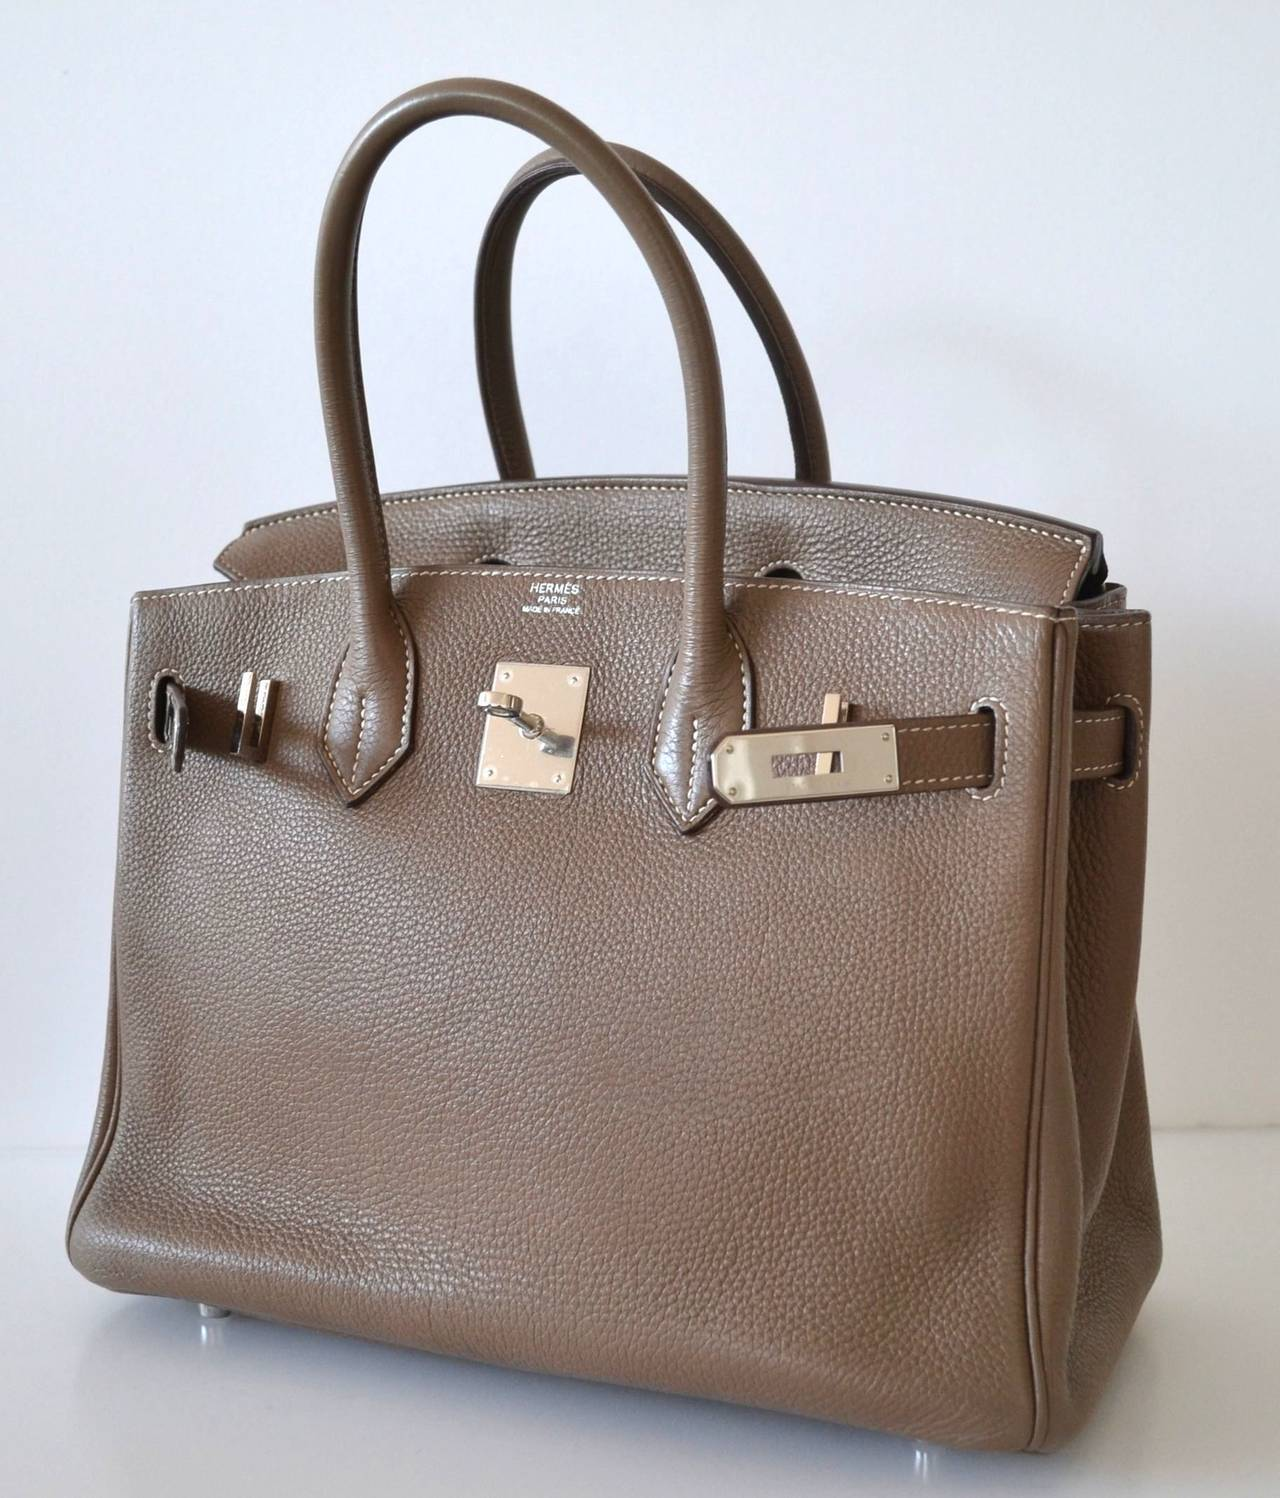 authentic hermes bag - Hermes Birkin 30 Togo Etoupe at 1stdibs